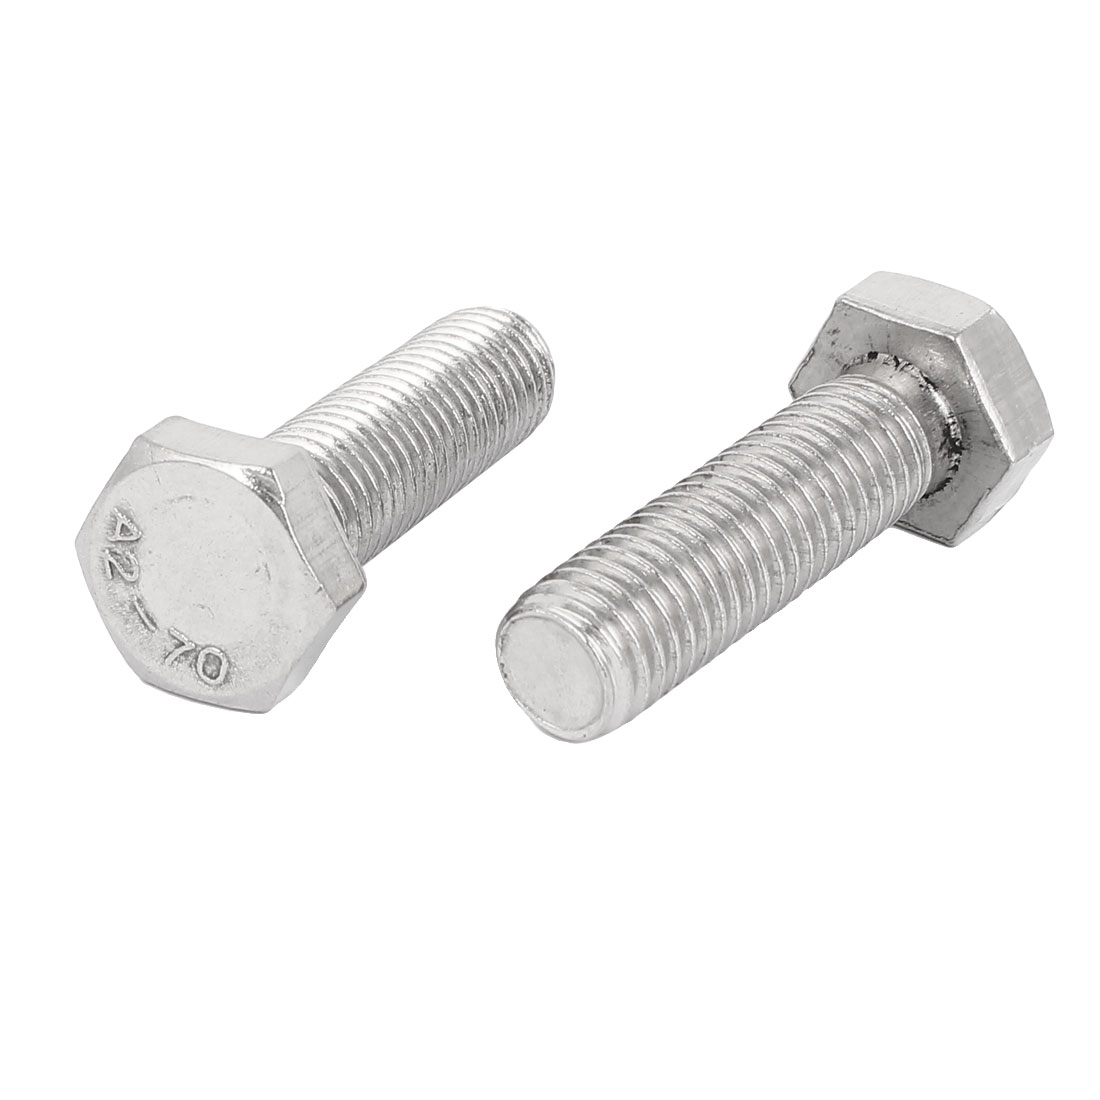 M14 x 47mm Stainless Steel Fasteners Fully Thread Hex Hexagon Bolts Screws 2PCS